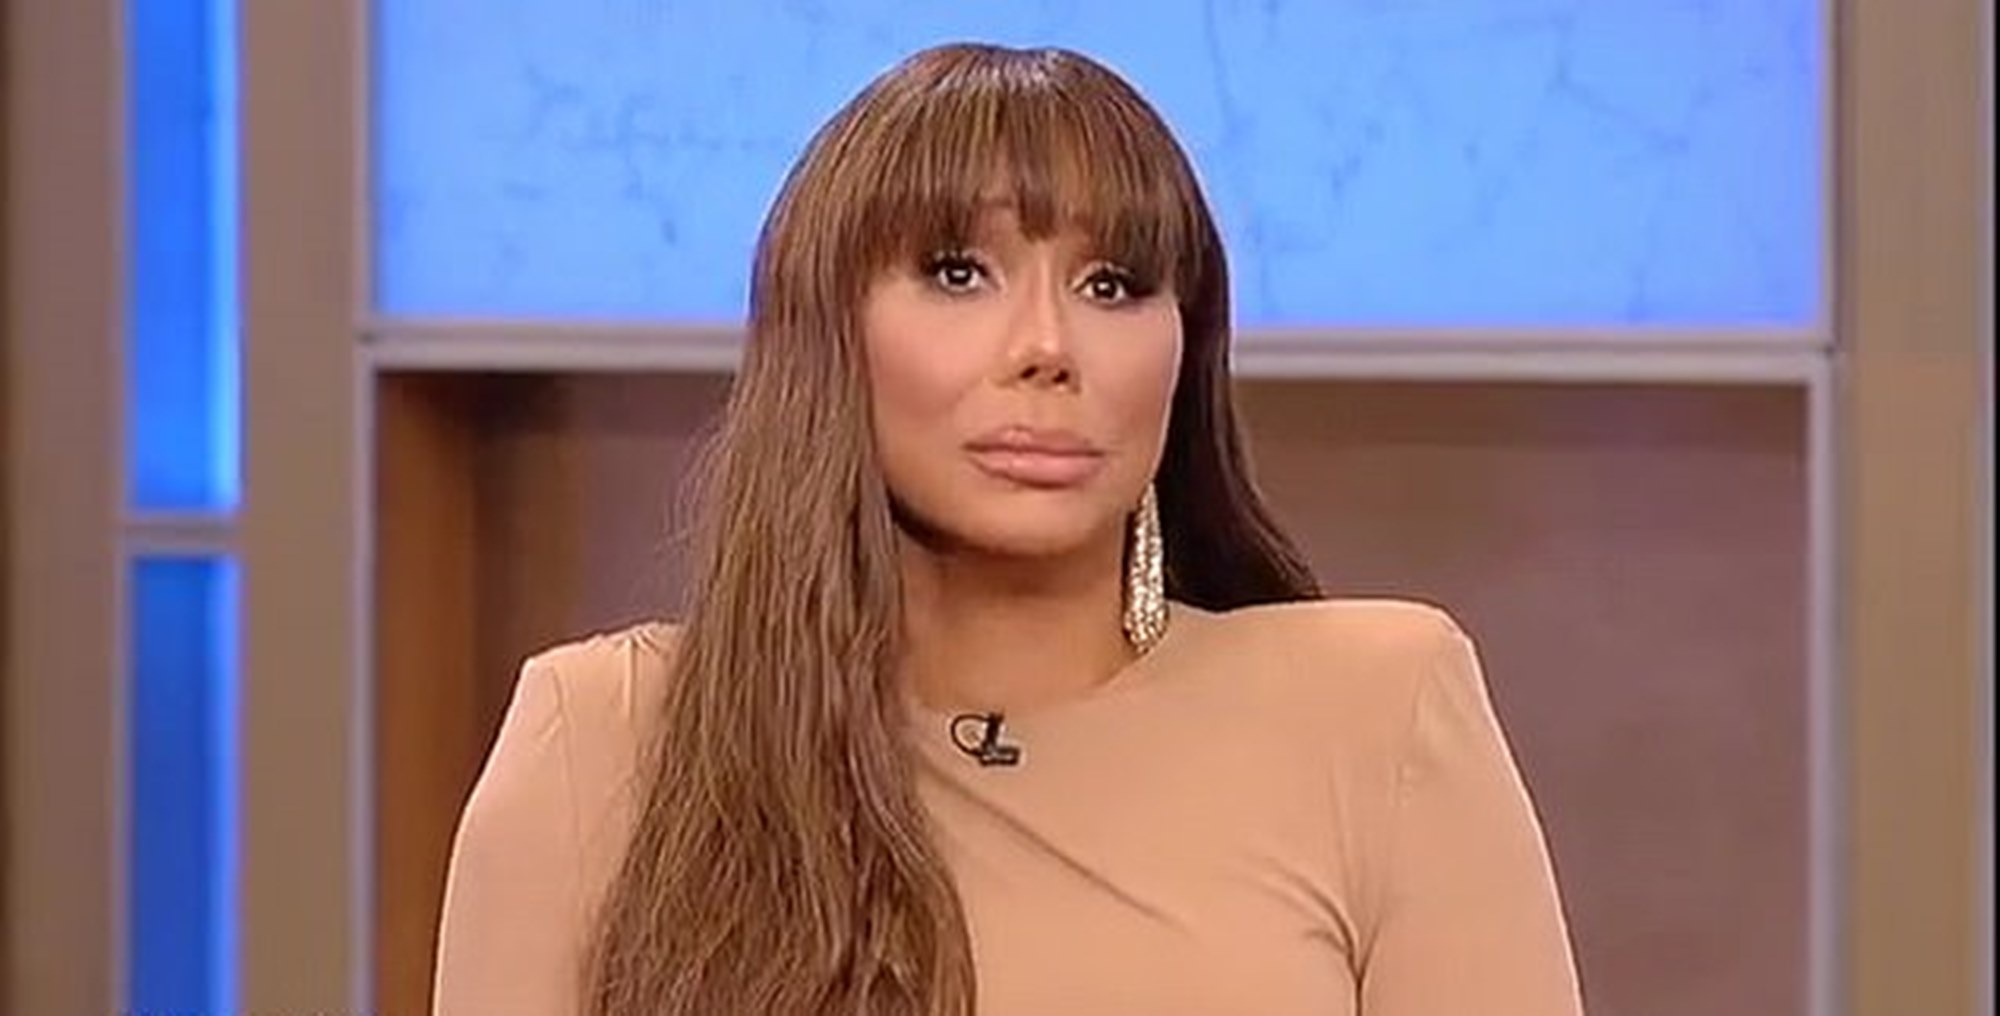 Tamar Braxton David Adefeso Tamron Hall Interview